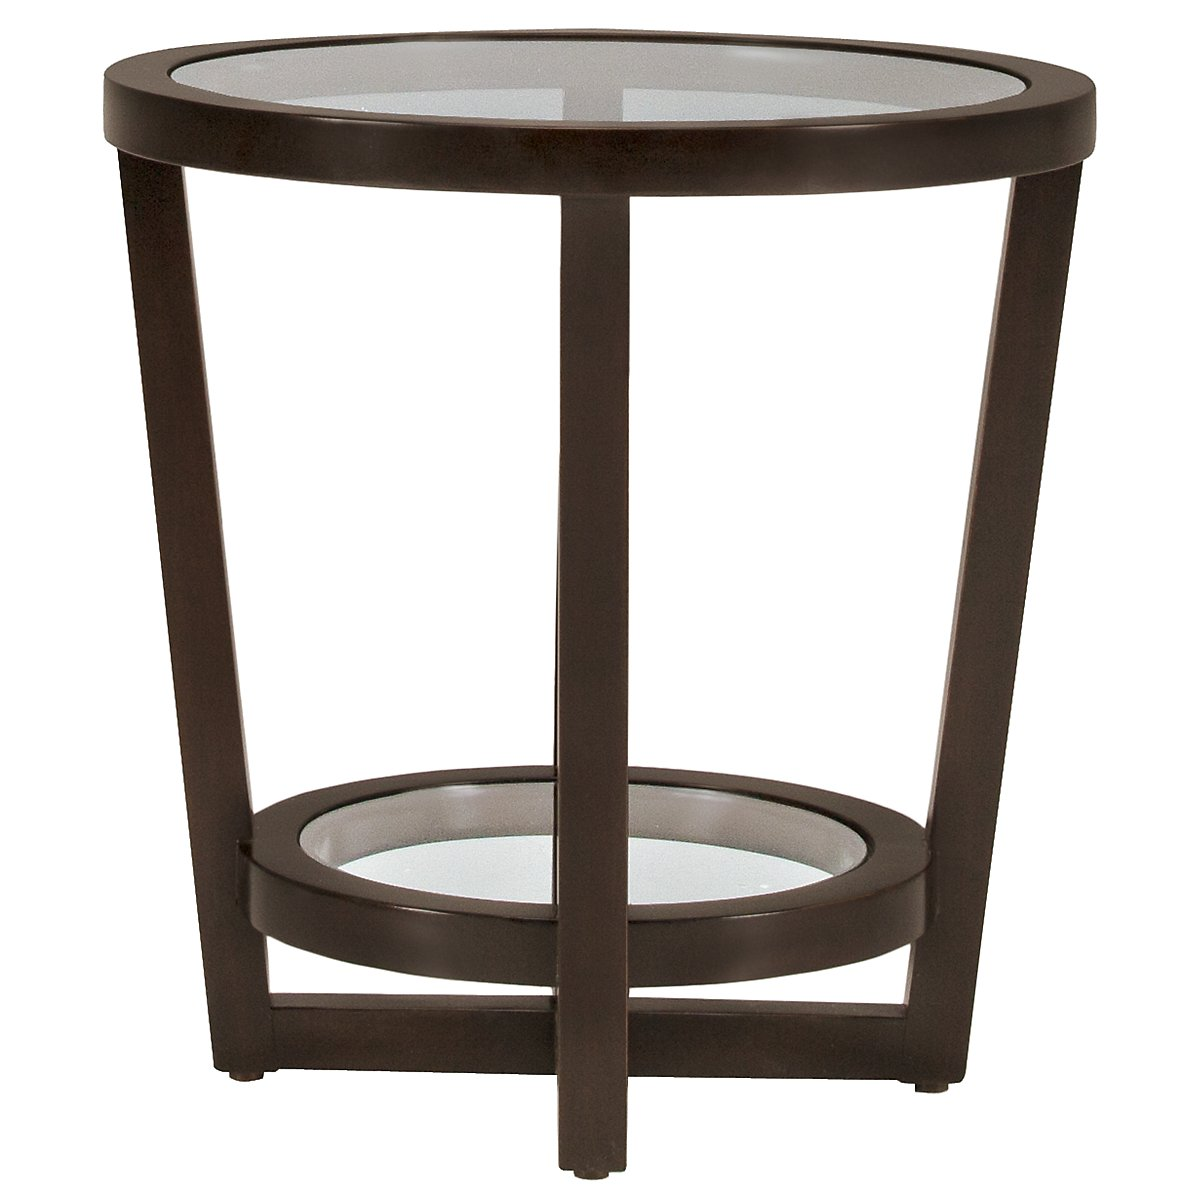 Zola Dark Tone Glass Round End Table